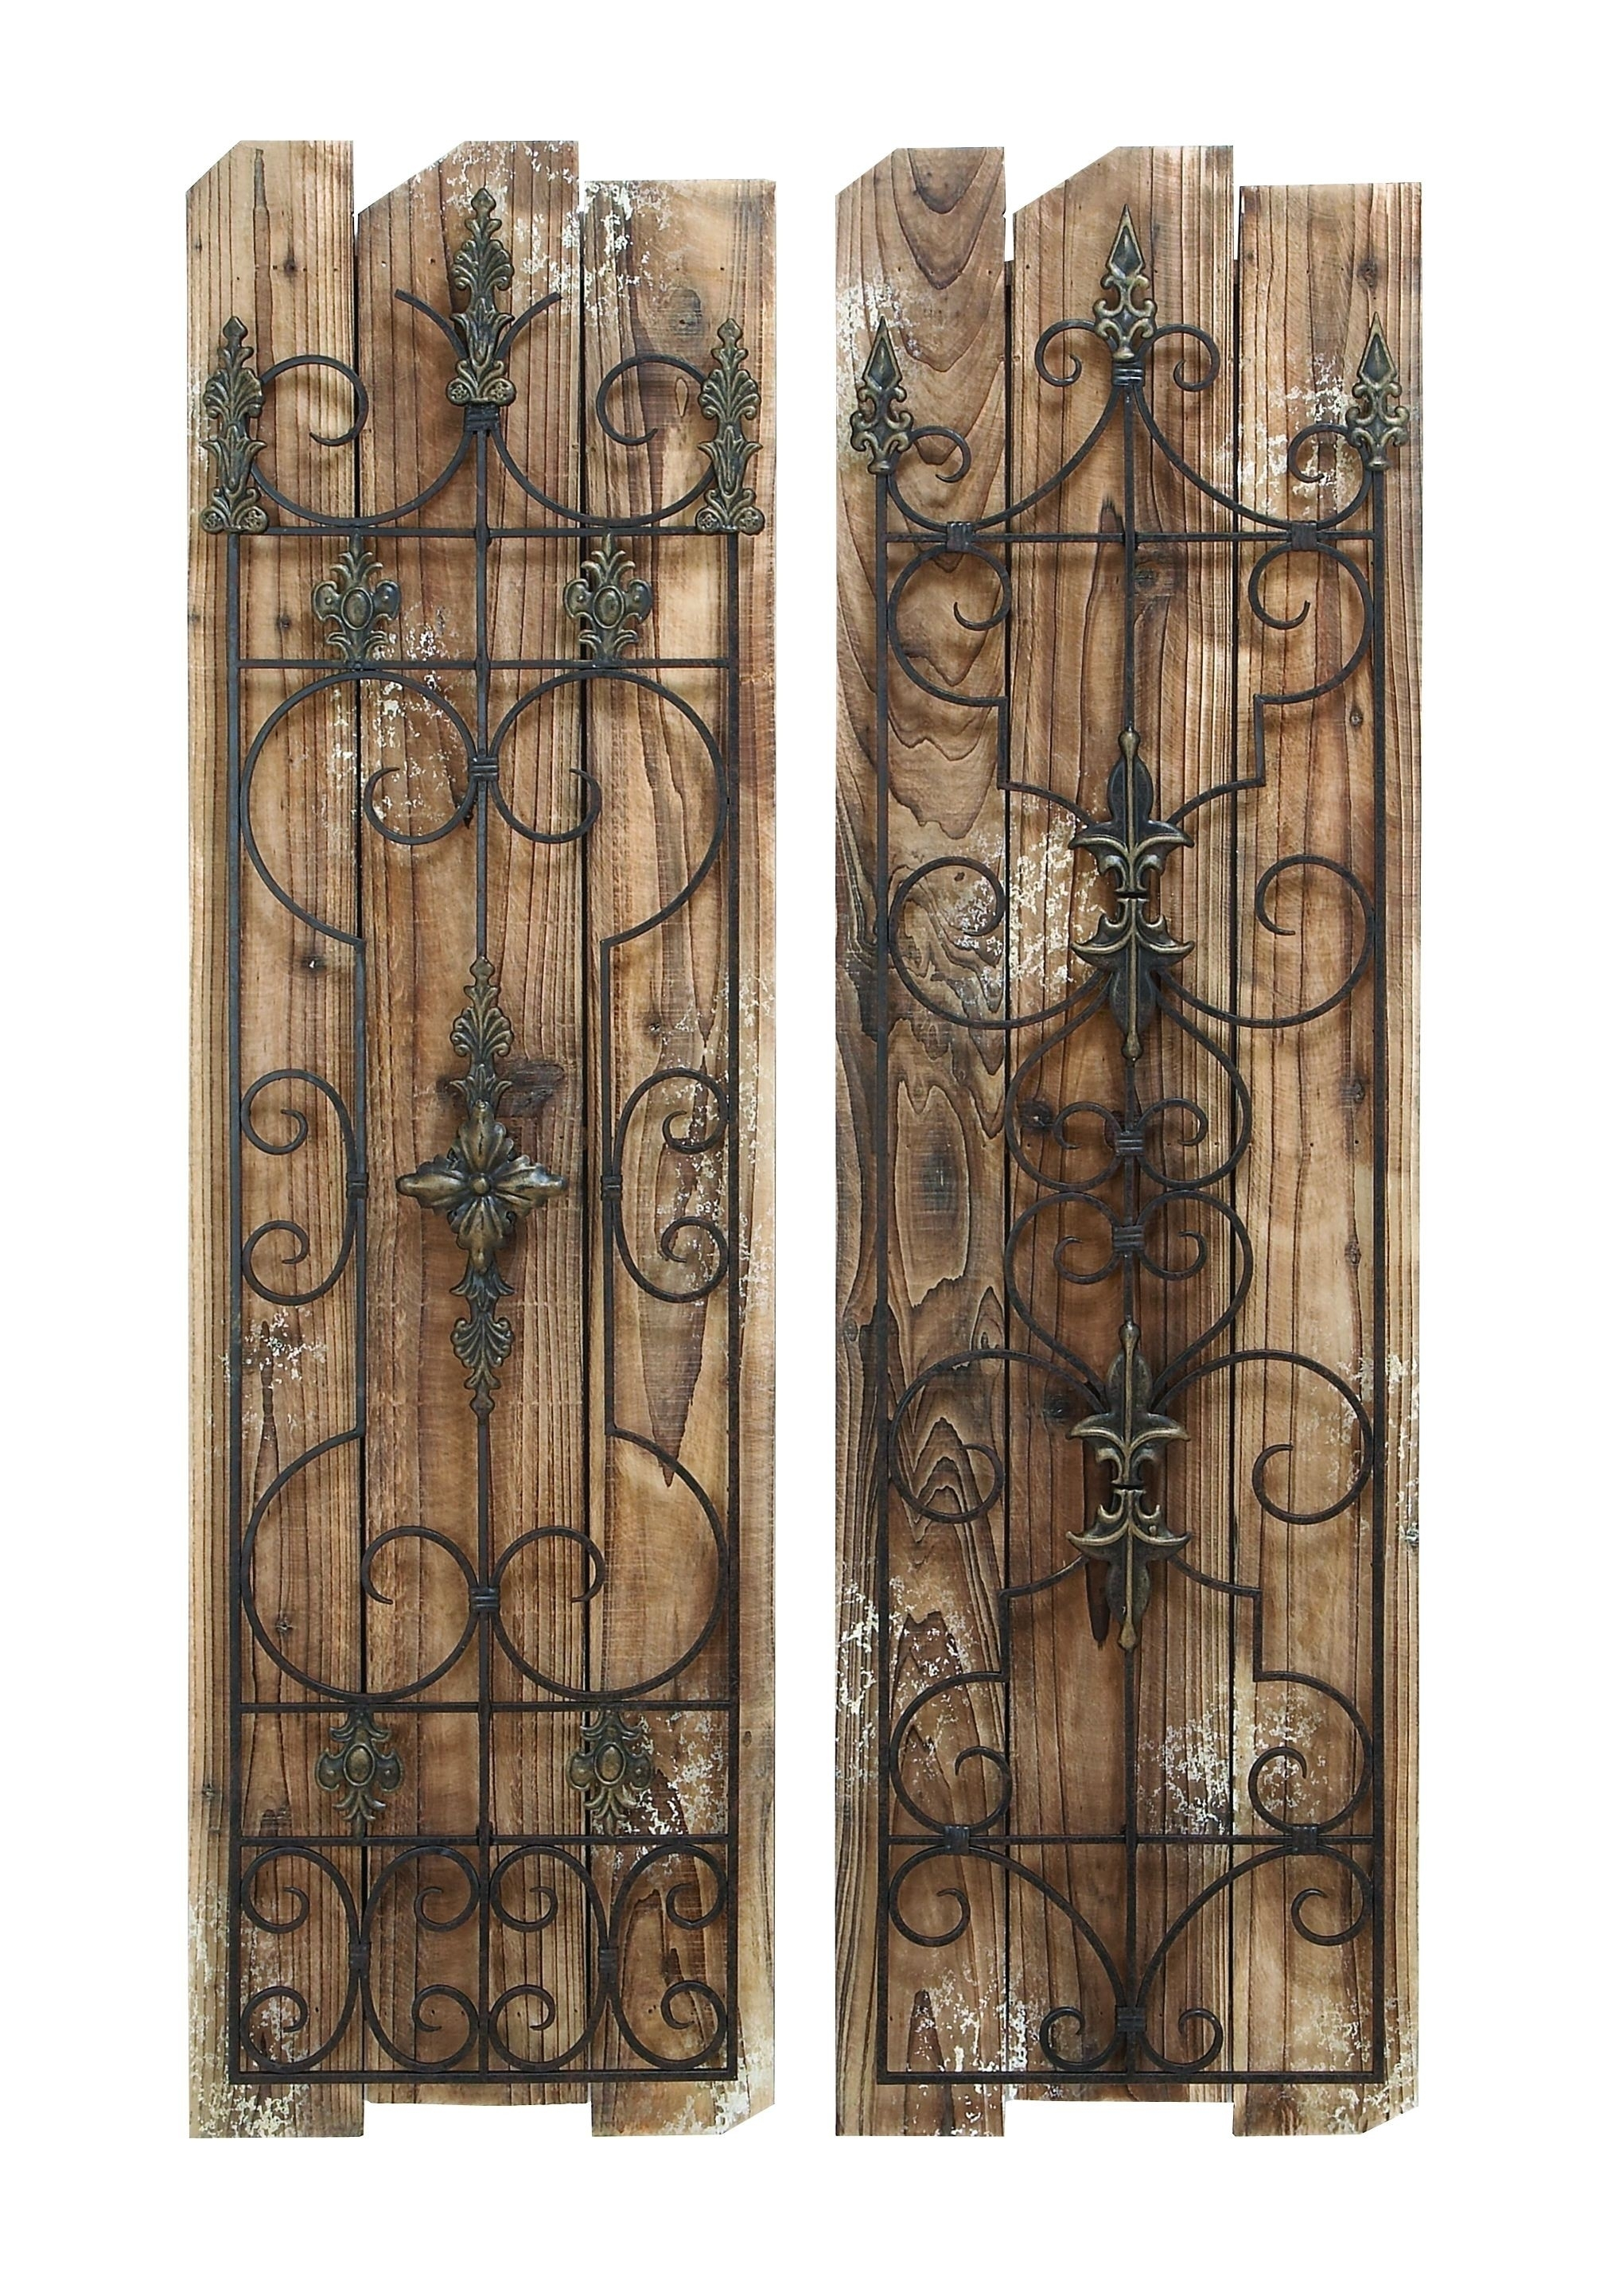 Wall Art Metal And Wood | Sevenstonesinc Regarding Latest Large Rustic Wall Art (Gallery 4 of 20)